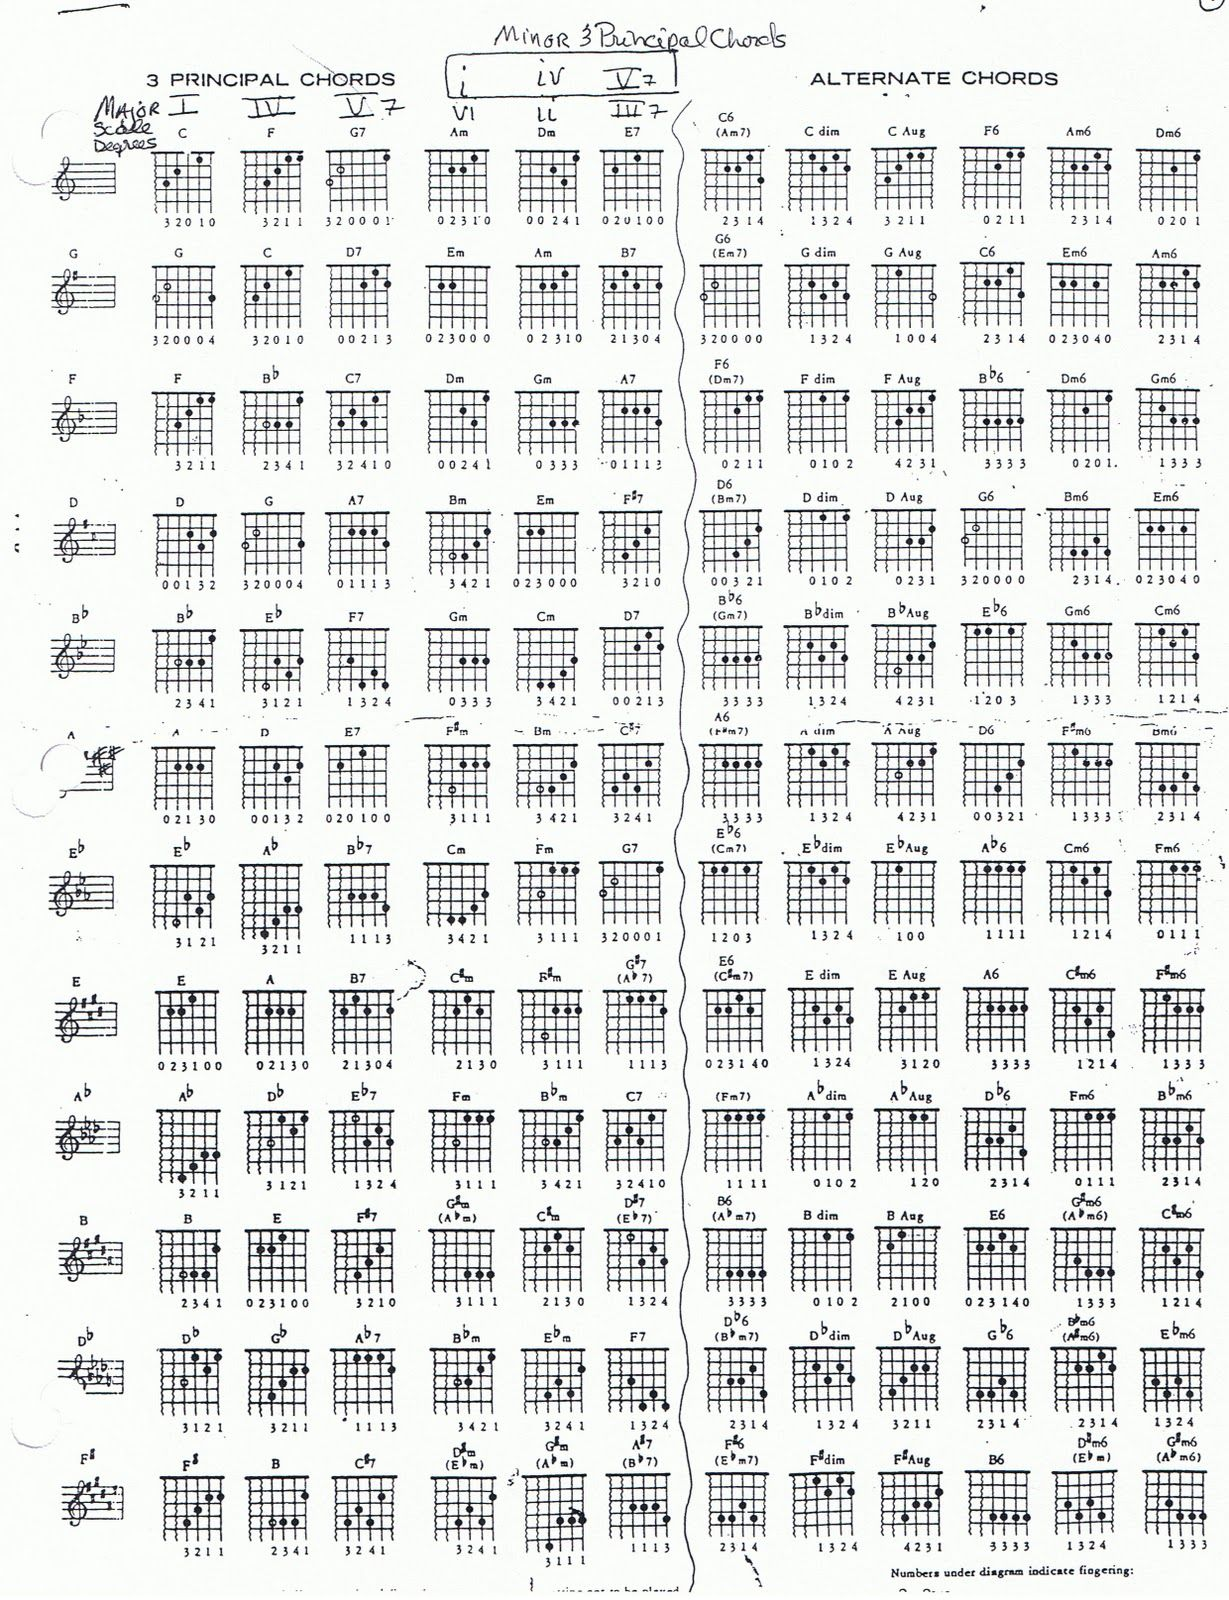 Guitar chords extended also here    free printable chord chart with all the basic rh pinterest